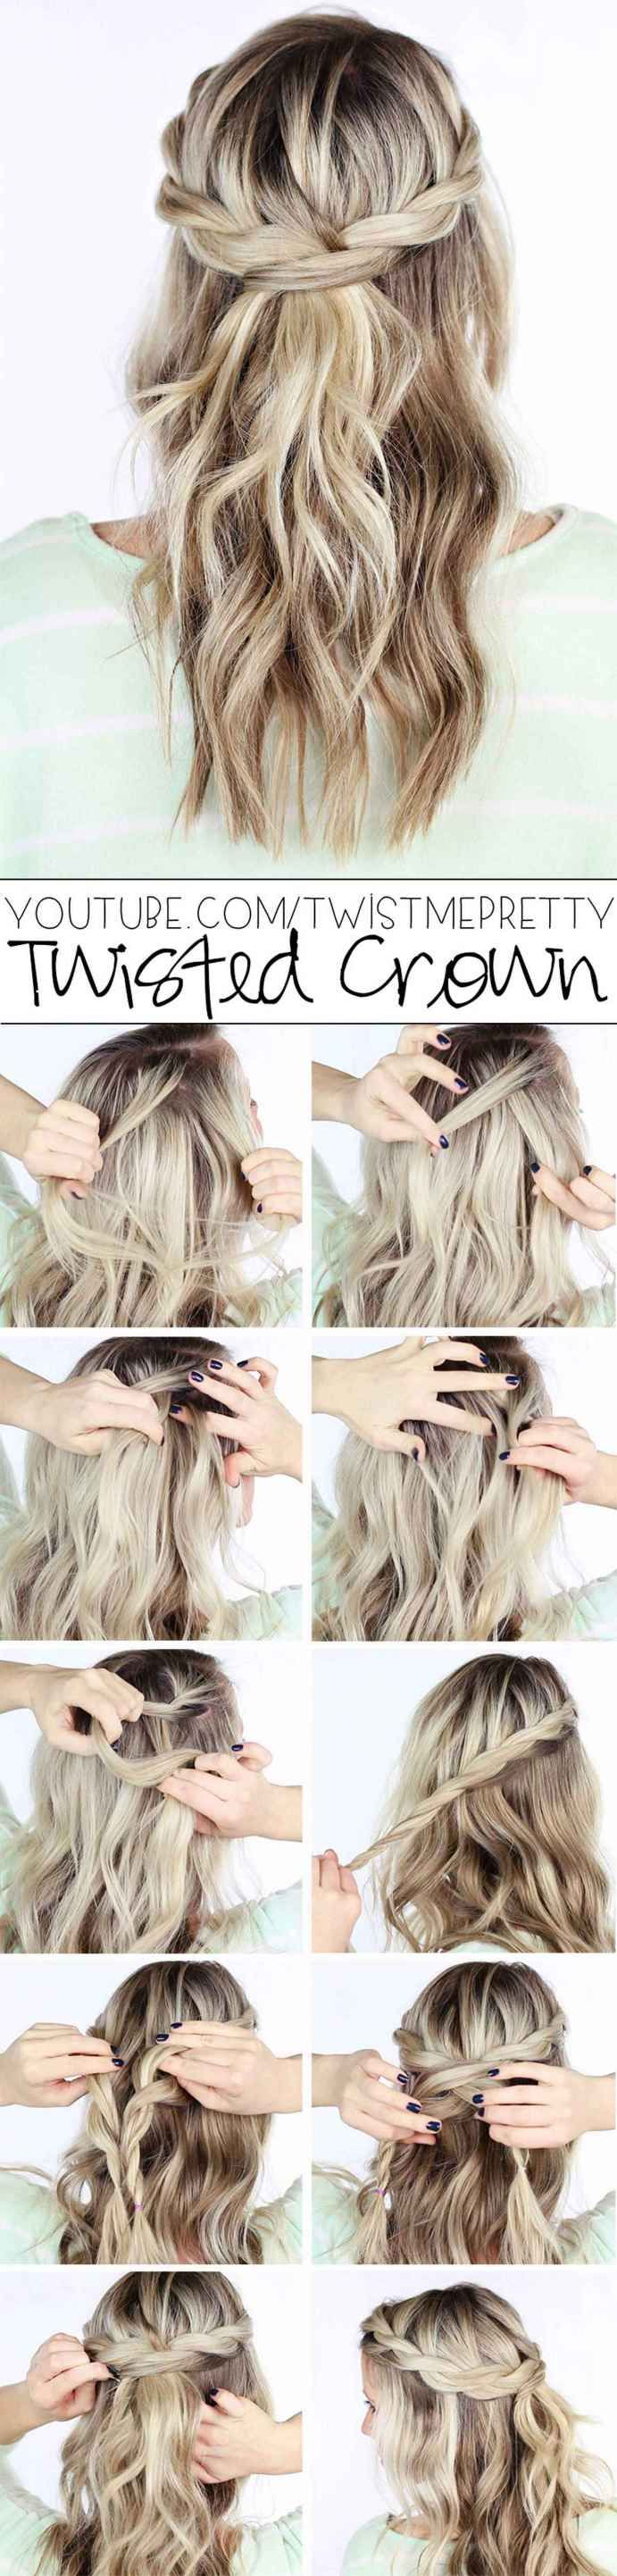 Hairstyles Diy And Tutorial For All Hair Lengths 016